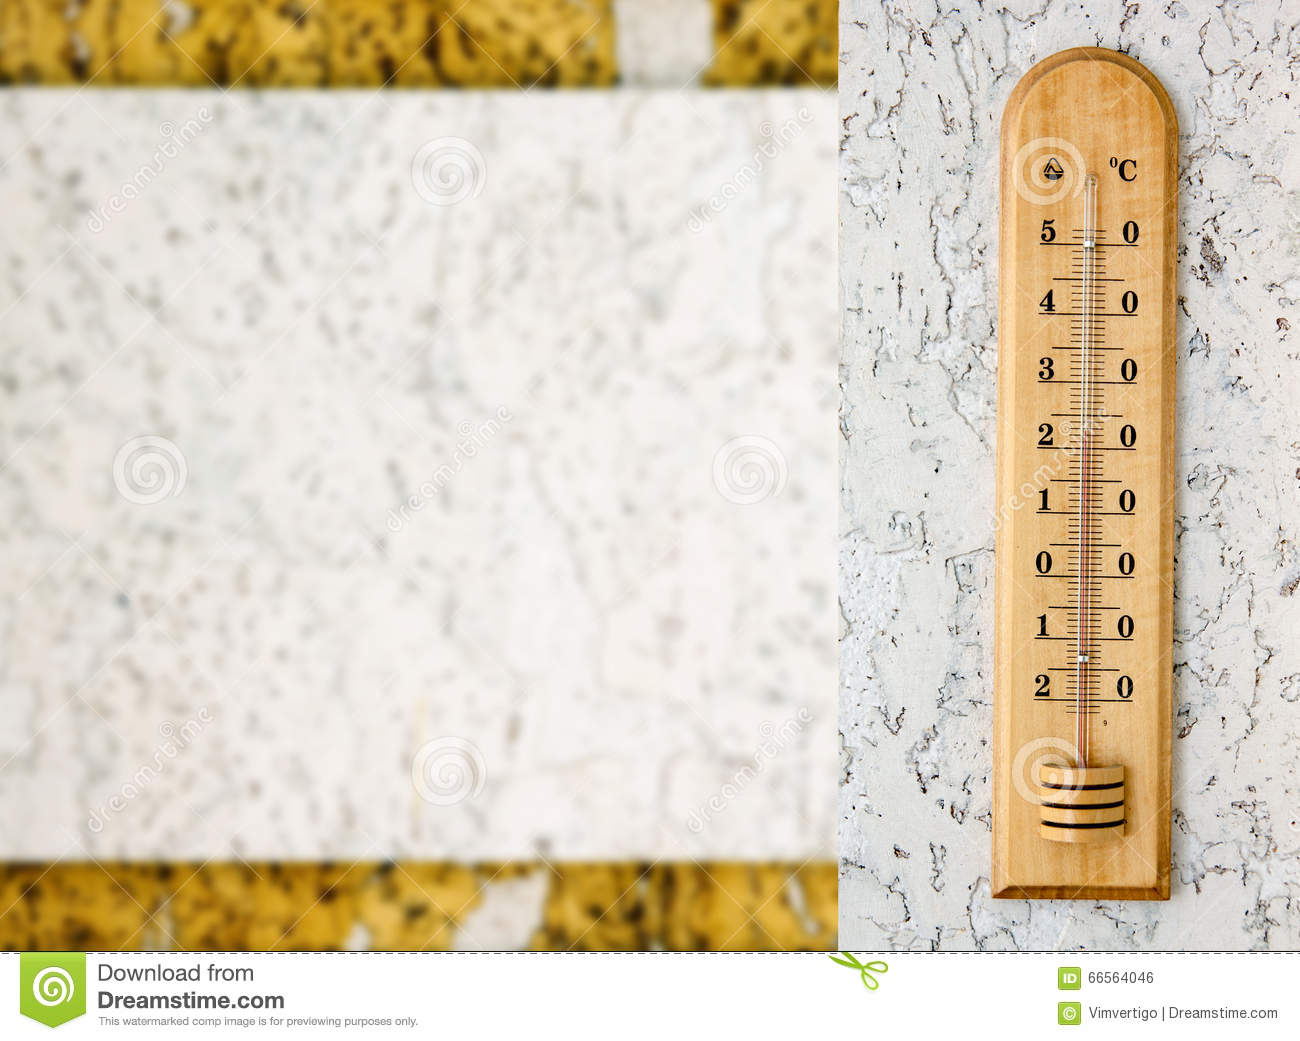 Closeup Photo Of Household Alcohol Thermometer Showing